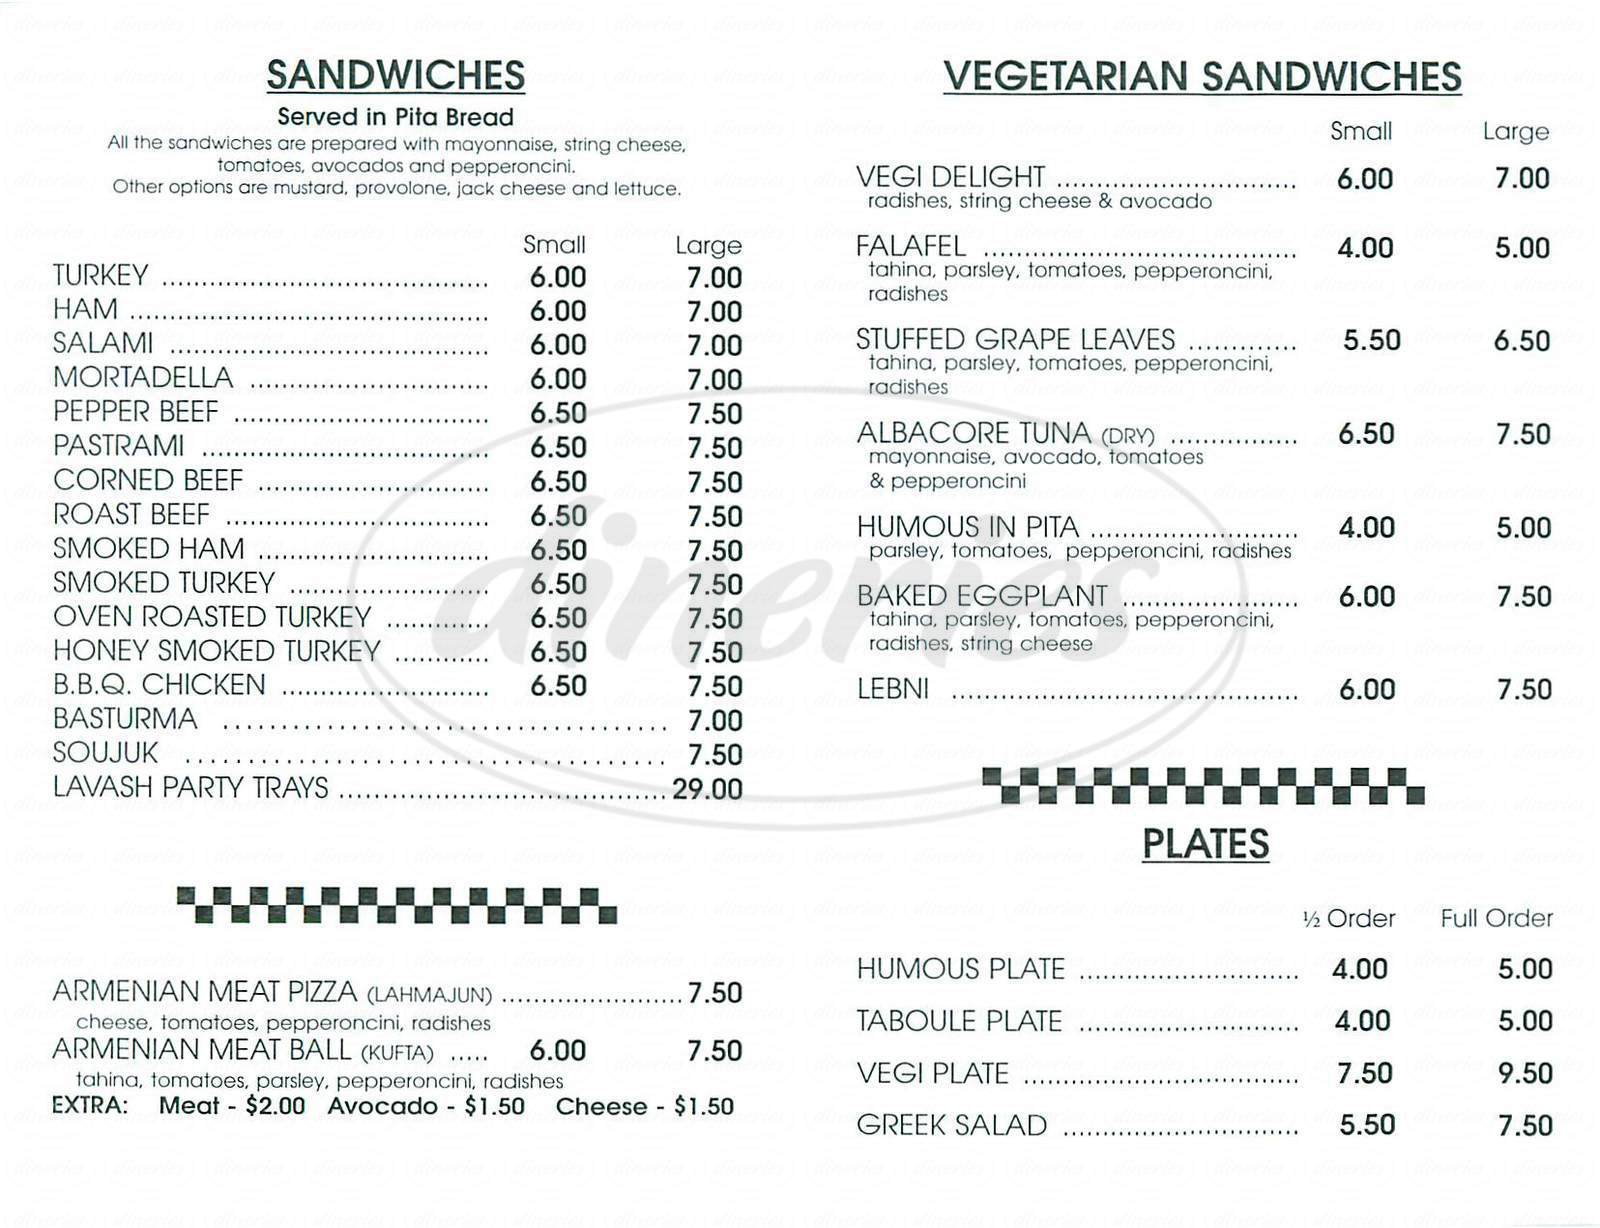 menu for Armenian Deli